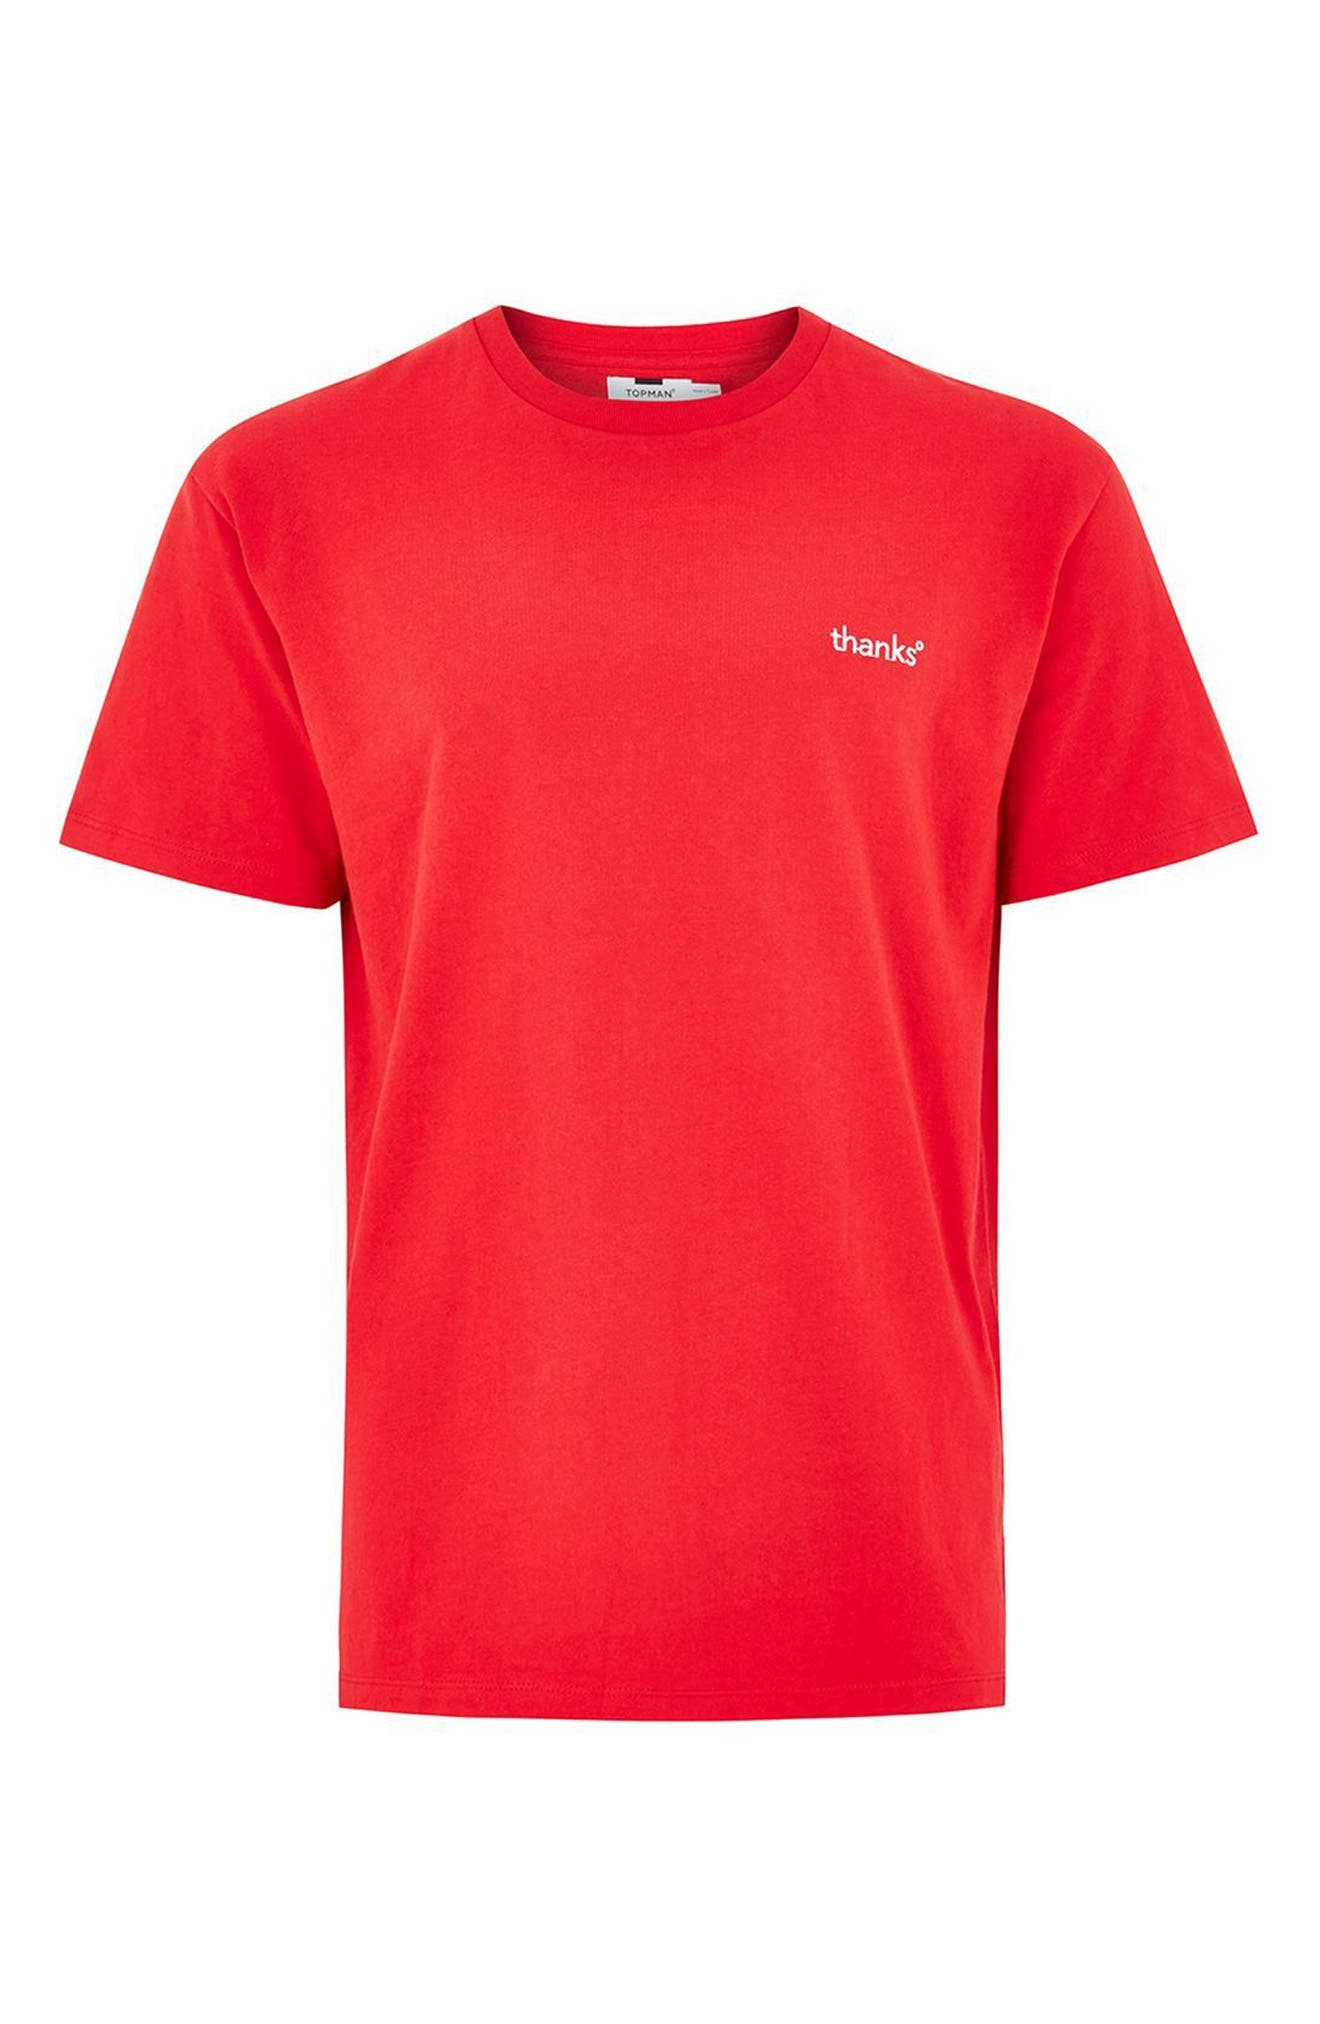 Oversize Embroidered Thanks T-Shirt,                             Alternate thumbnail 4, color,                             Red